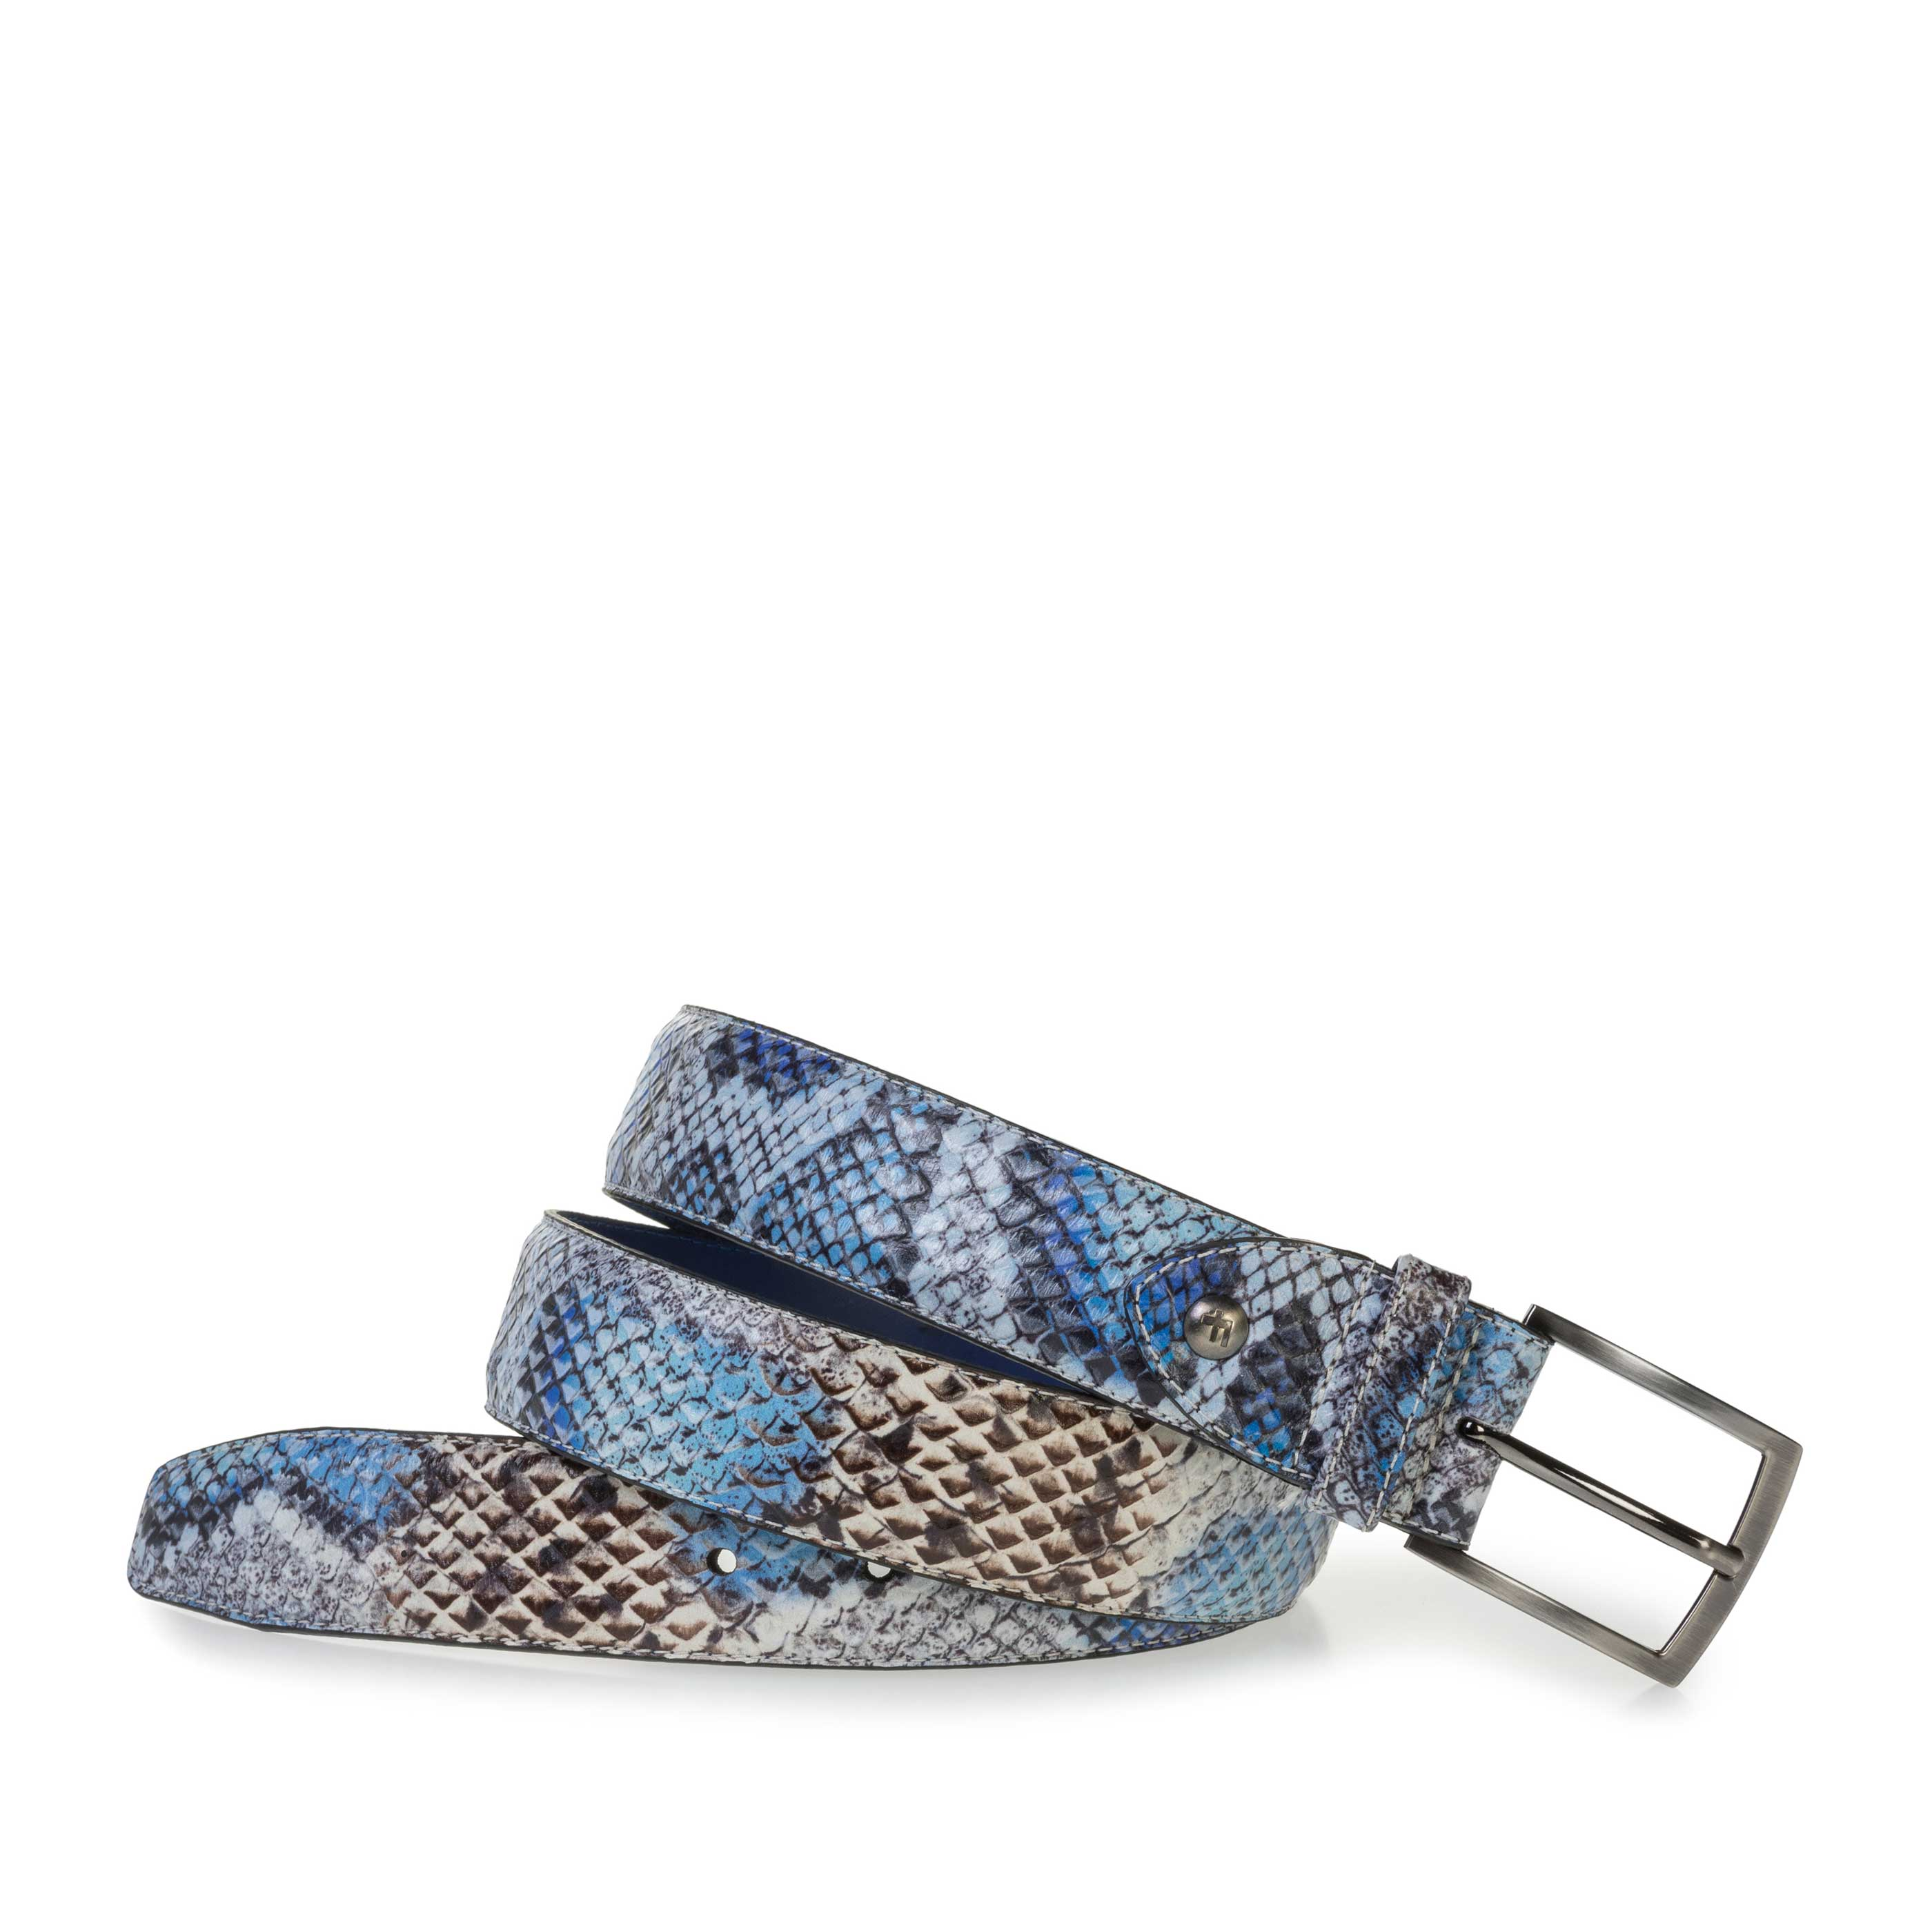 75201/65 - Premium belt with blue snake print